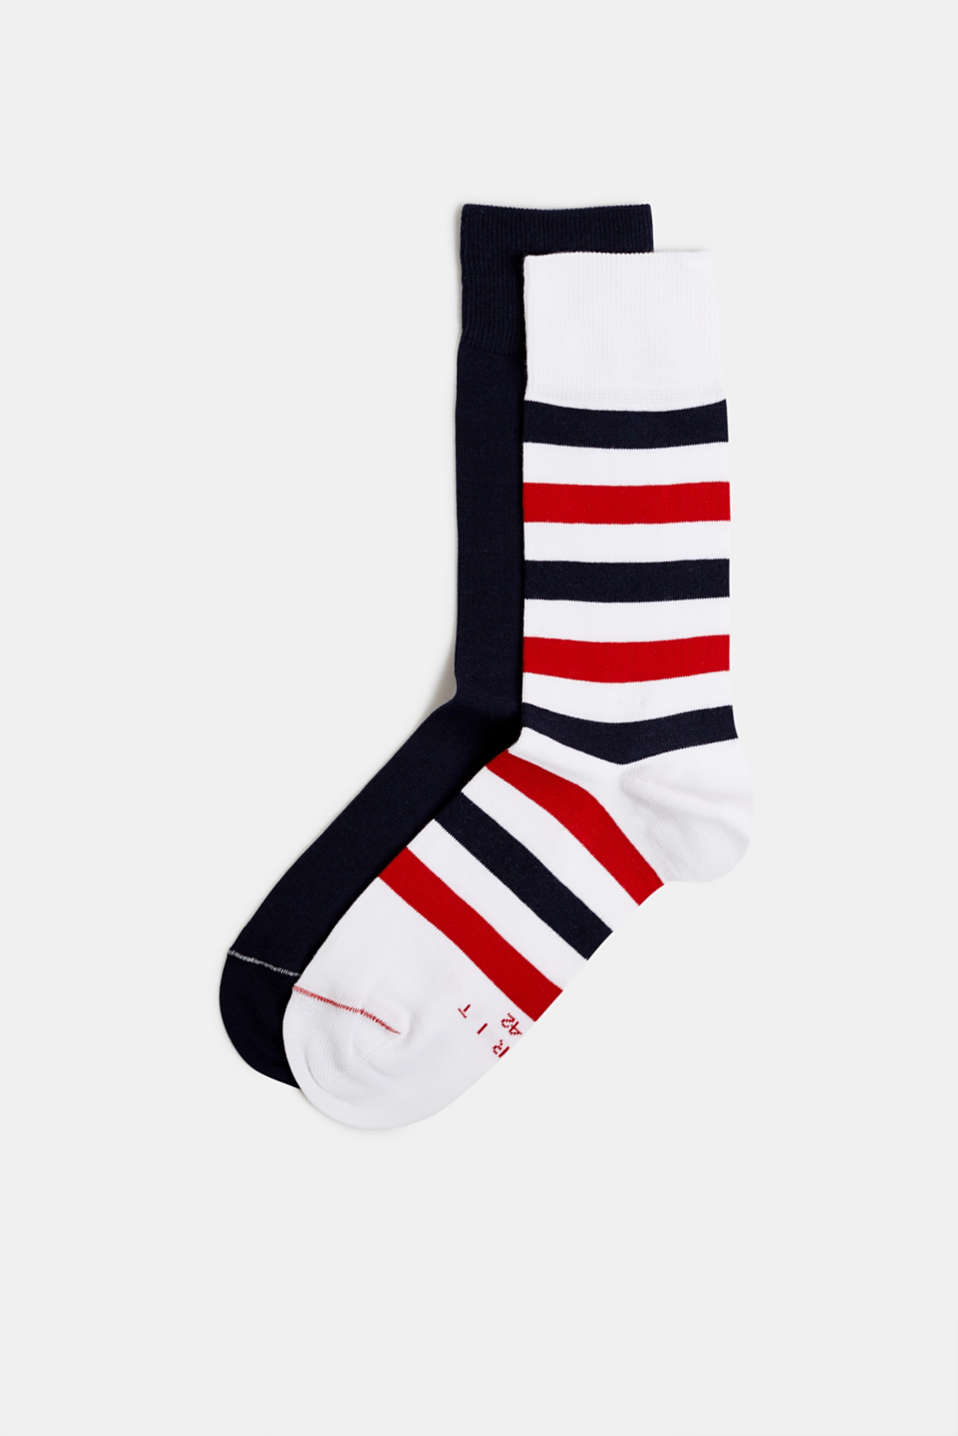 Esprit - In a double pack: plain and striped socks